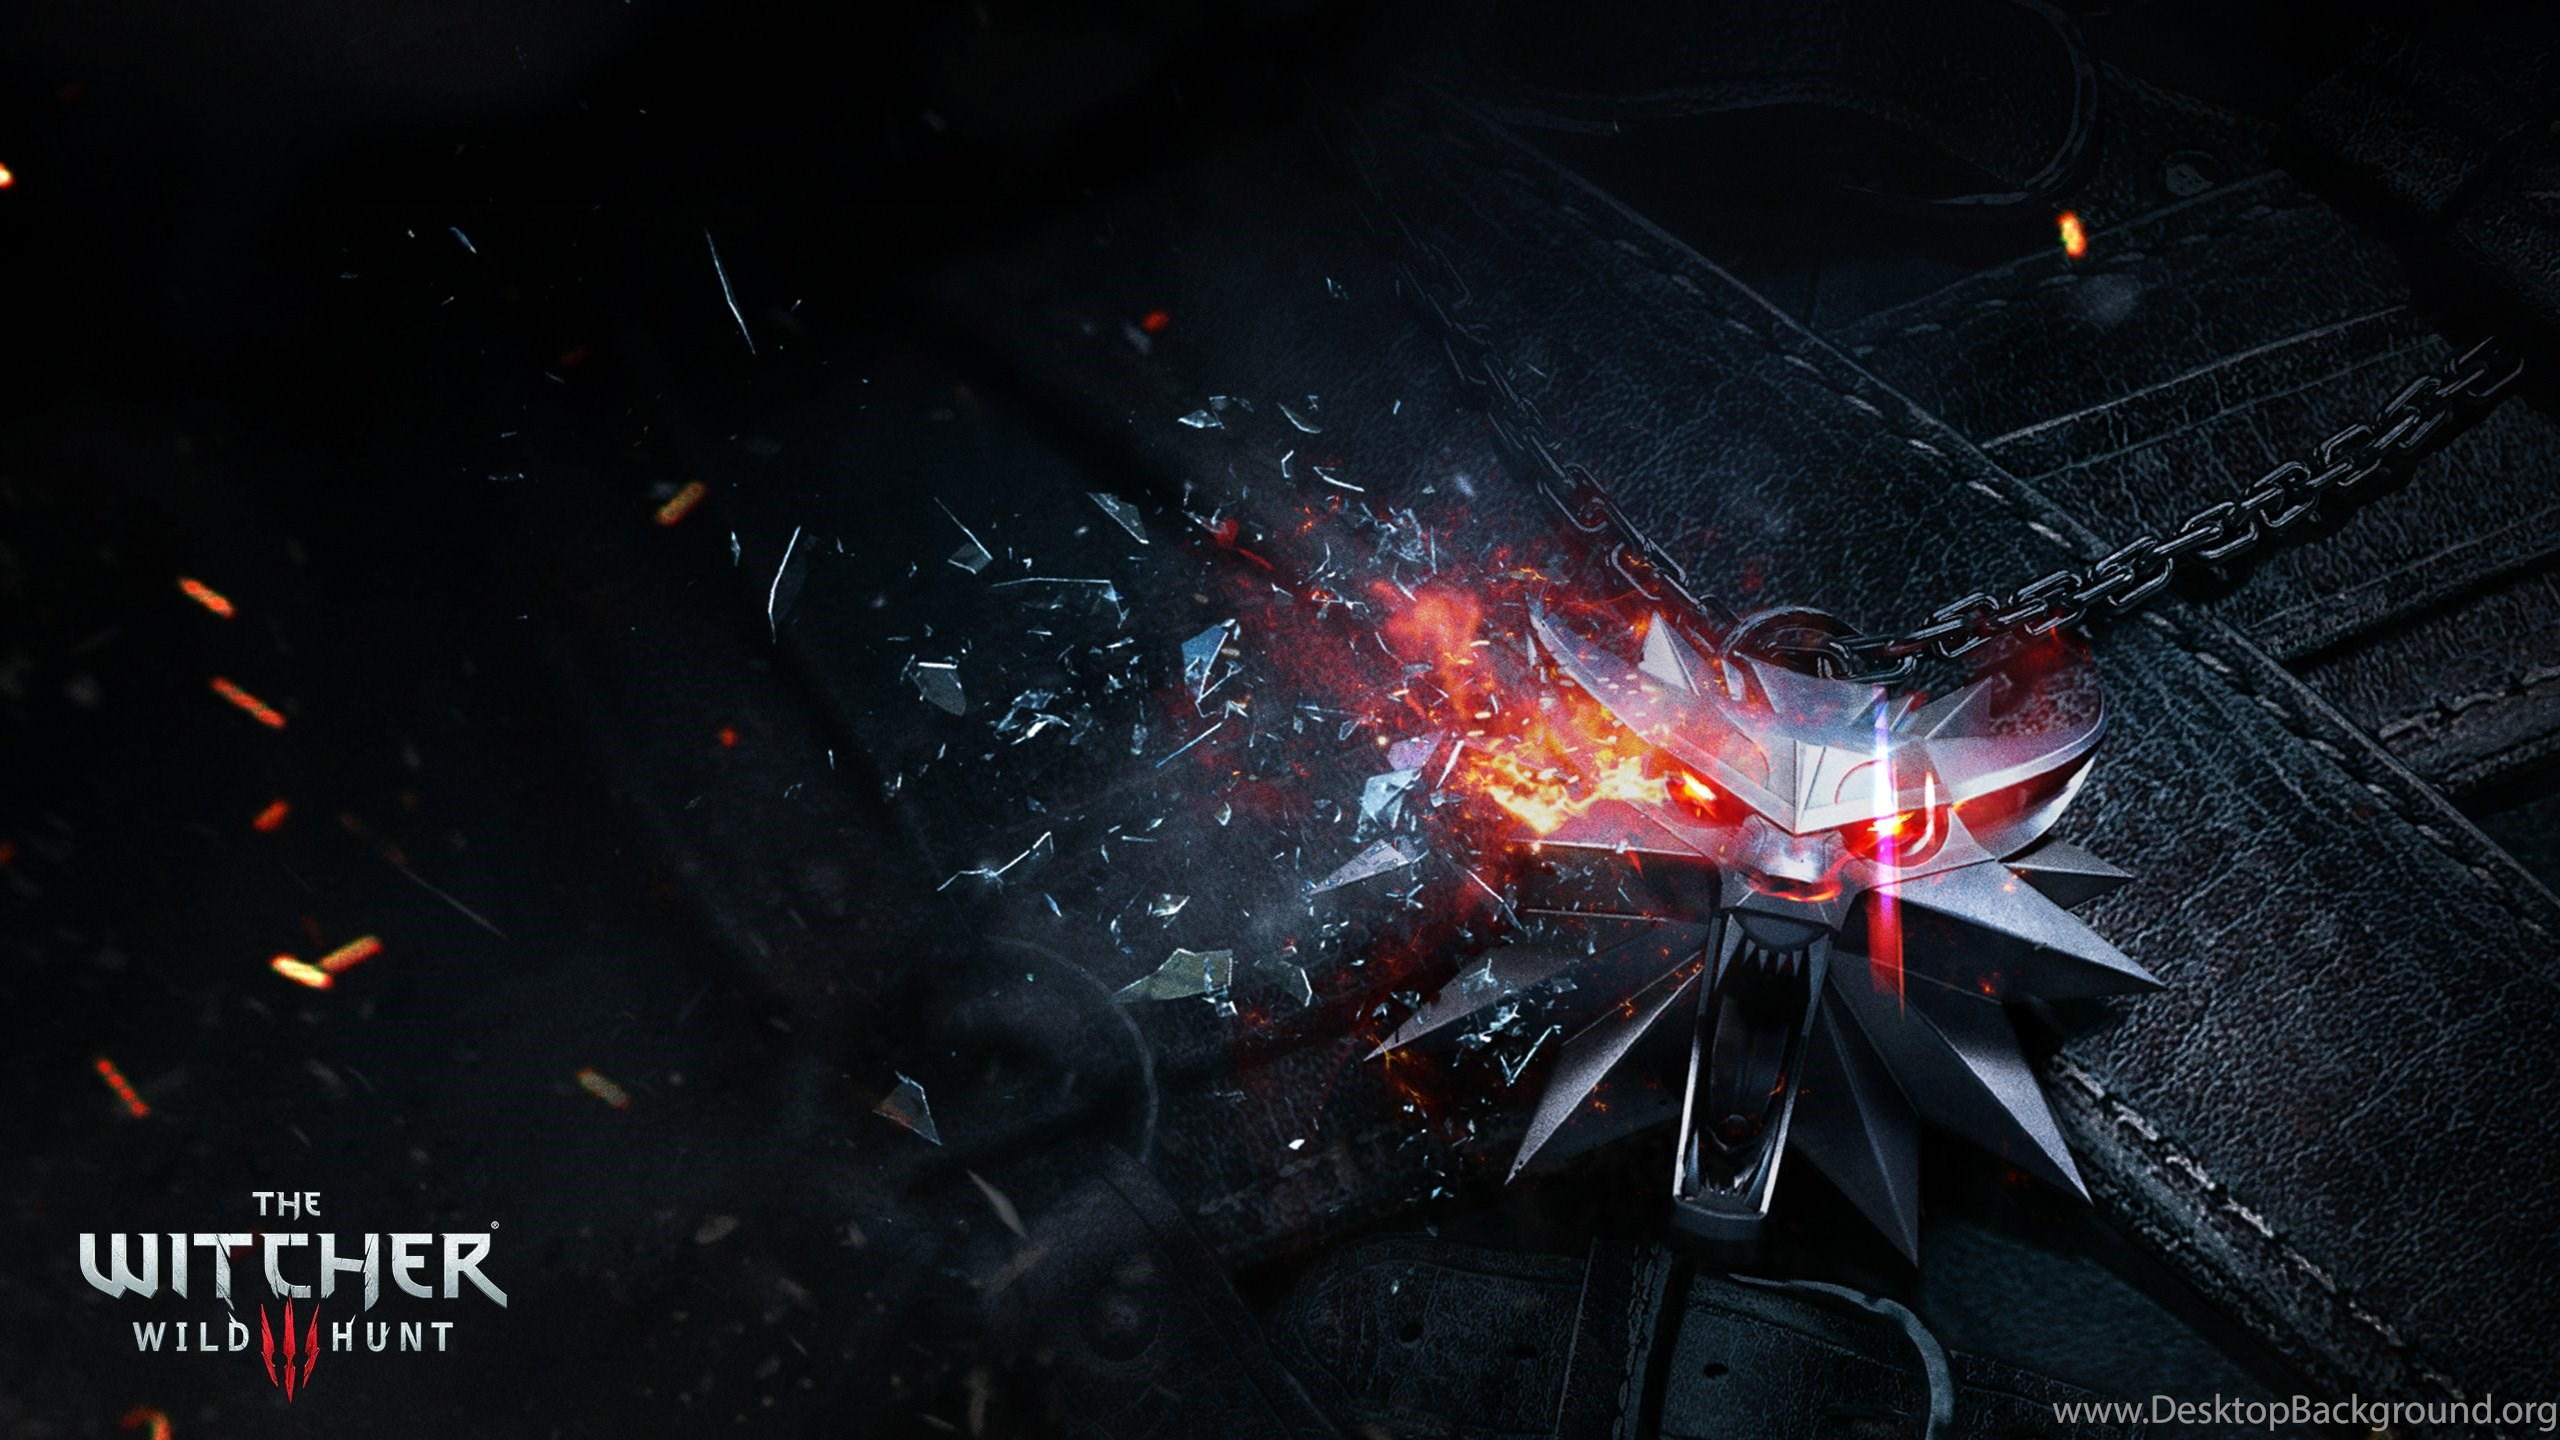 307 the witcher 3 wild hunt hd wallpapers desktop background